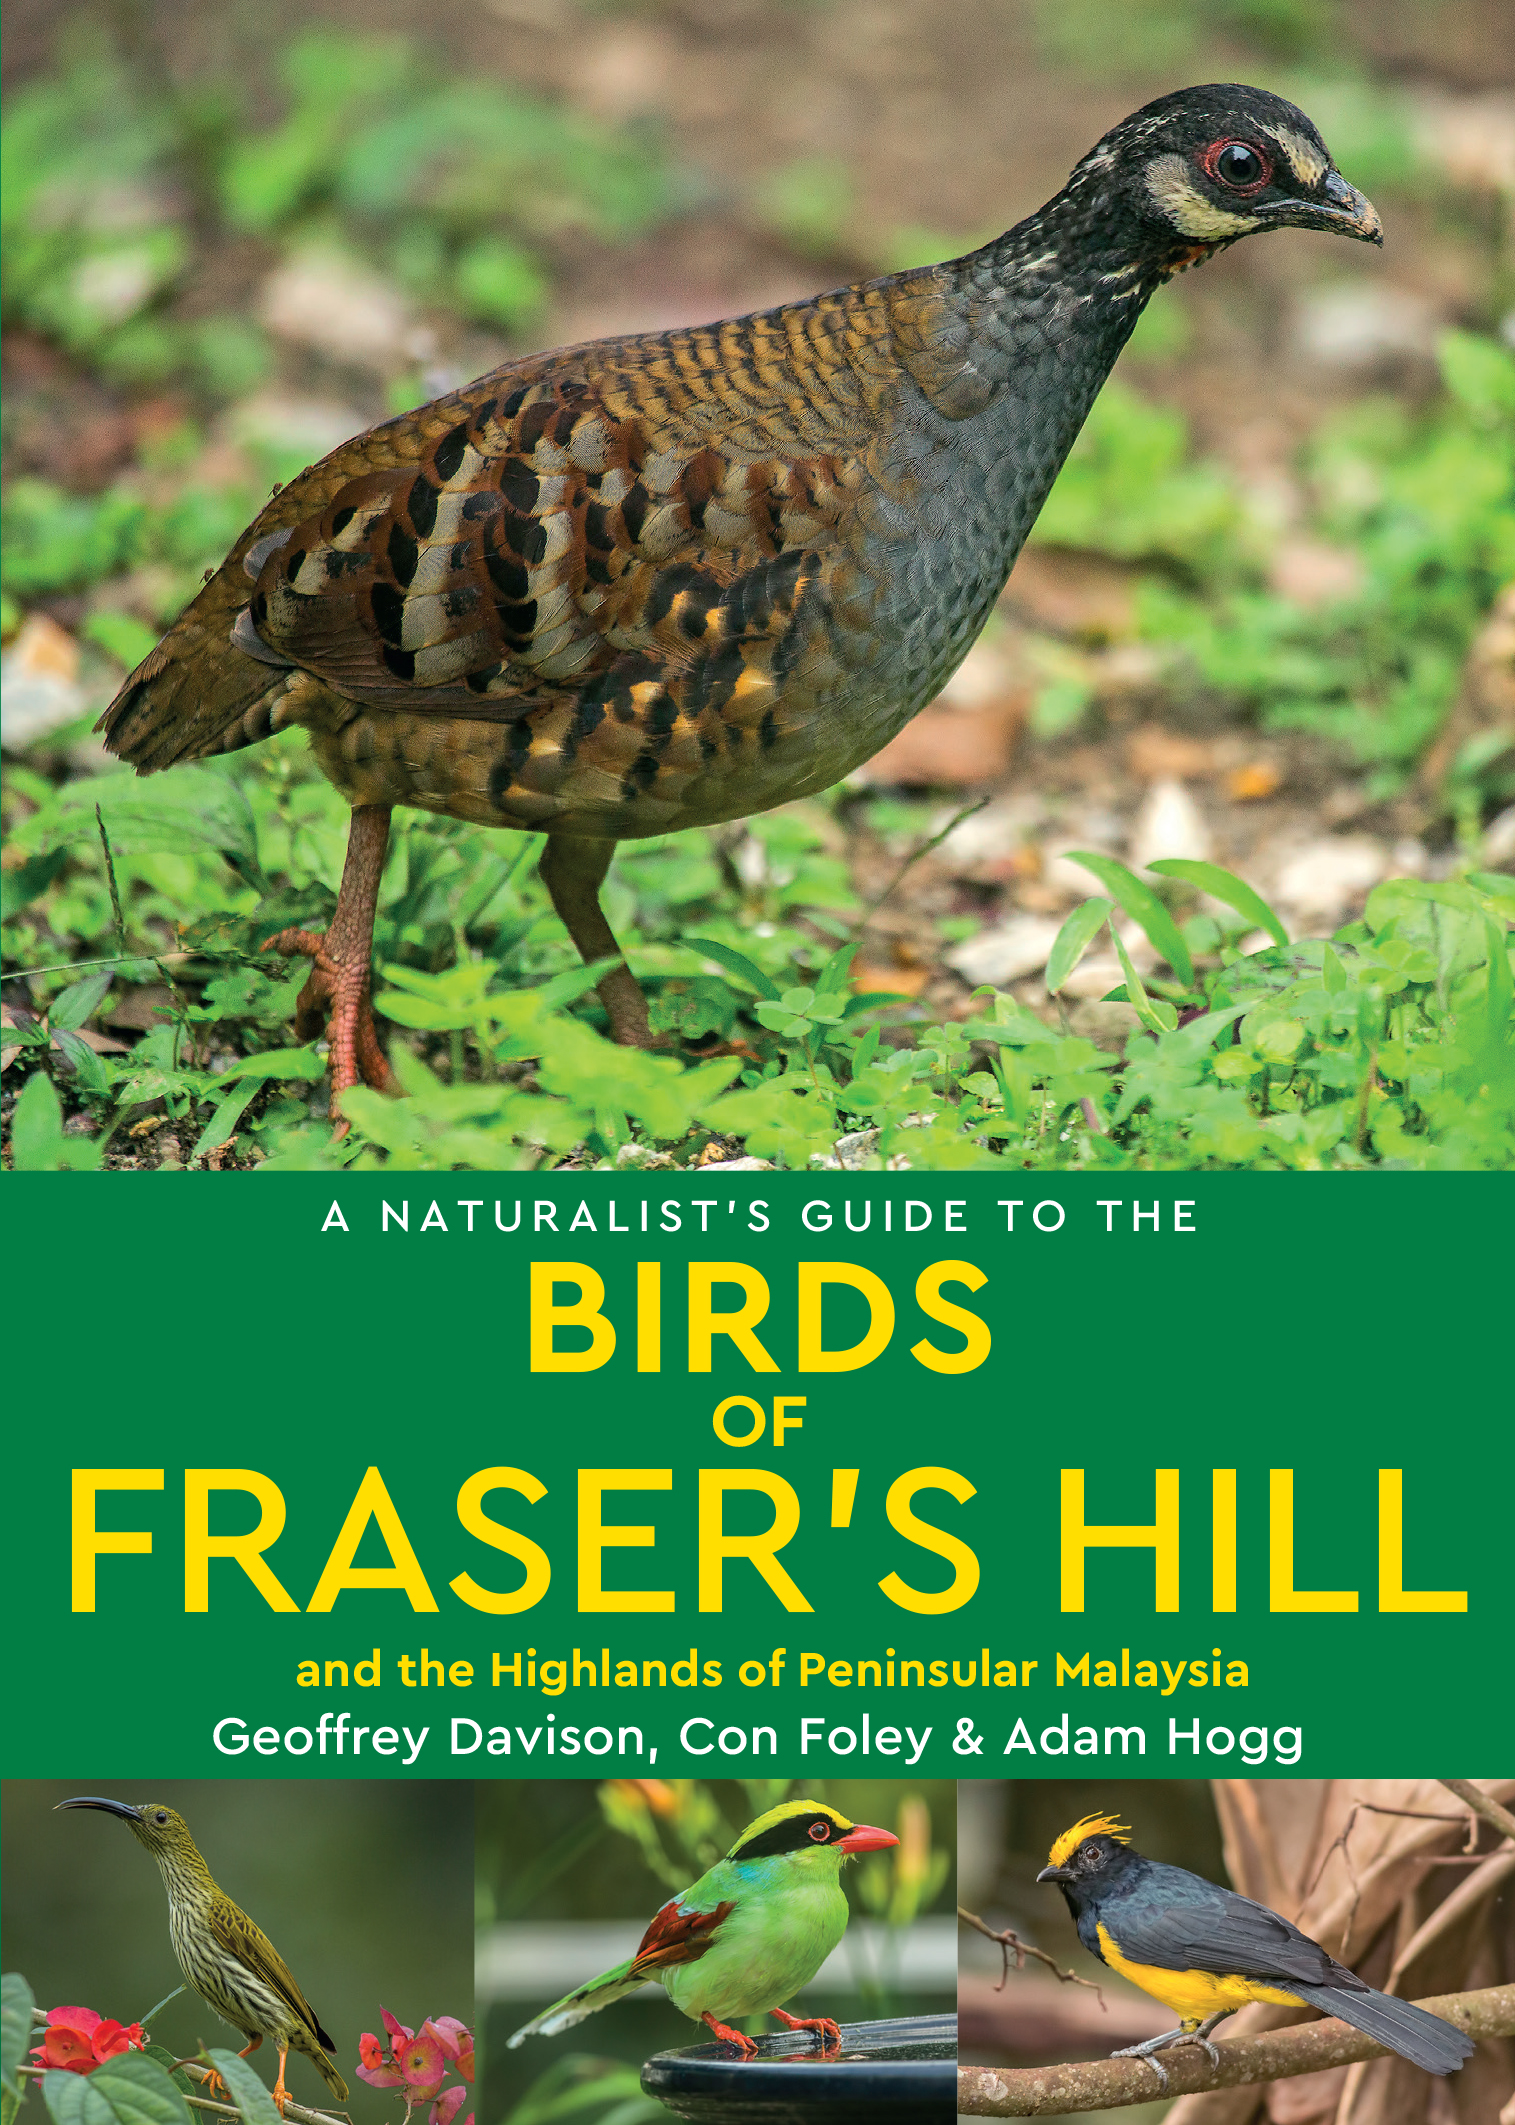 A Naturalist's Guide to the Birds of Fraser's Hill & the Highlands of Peninsular Malaysia